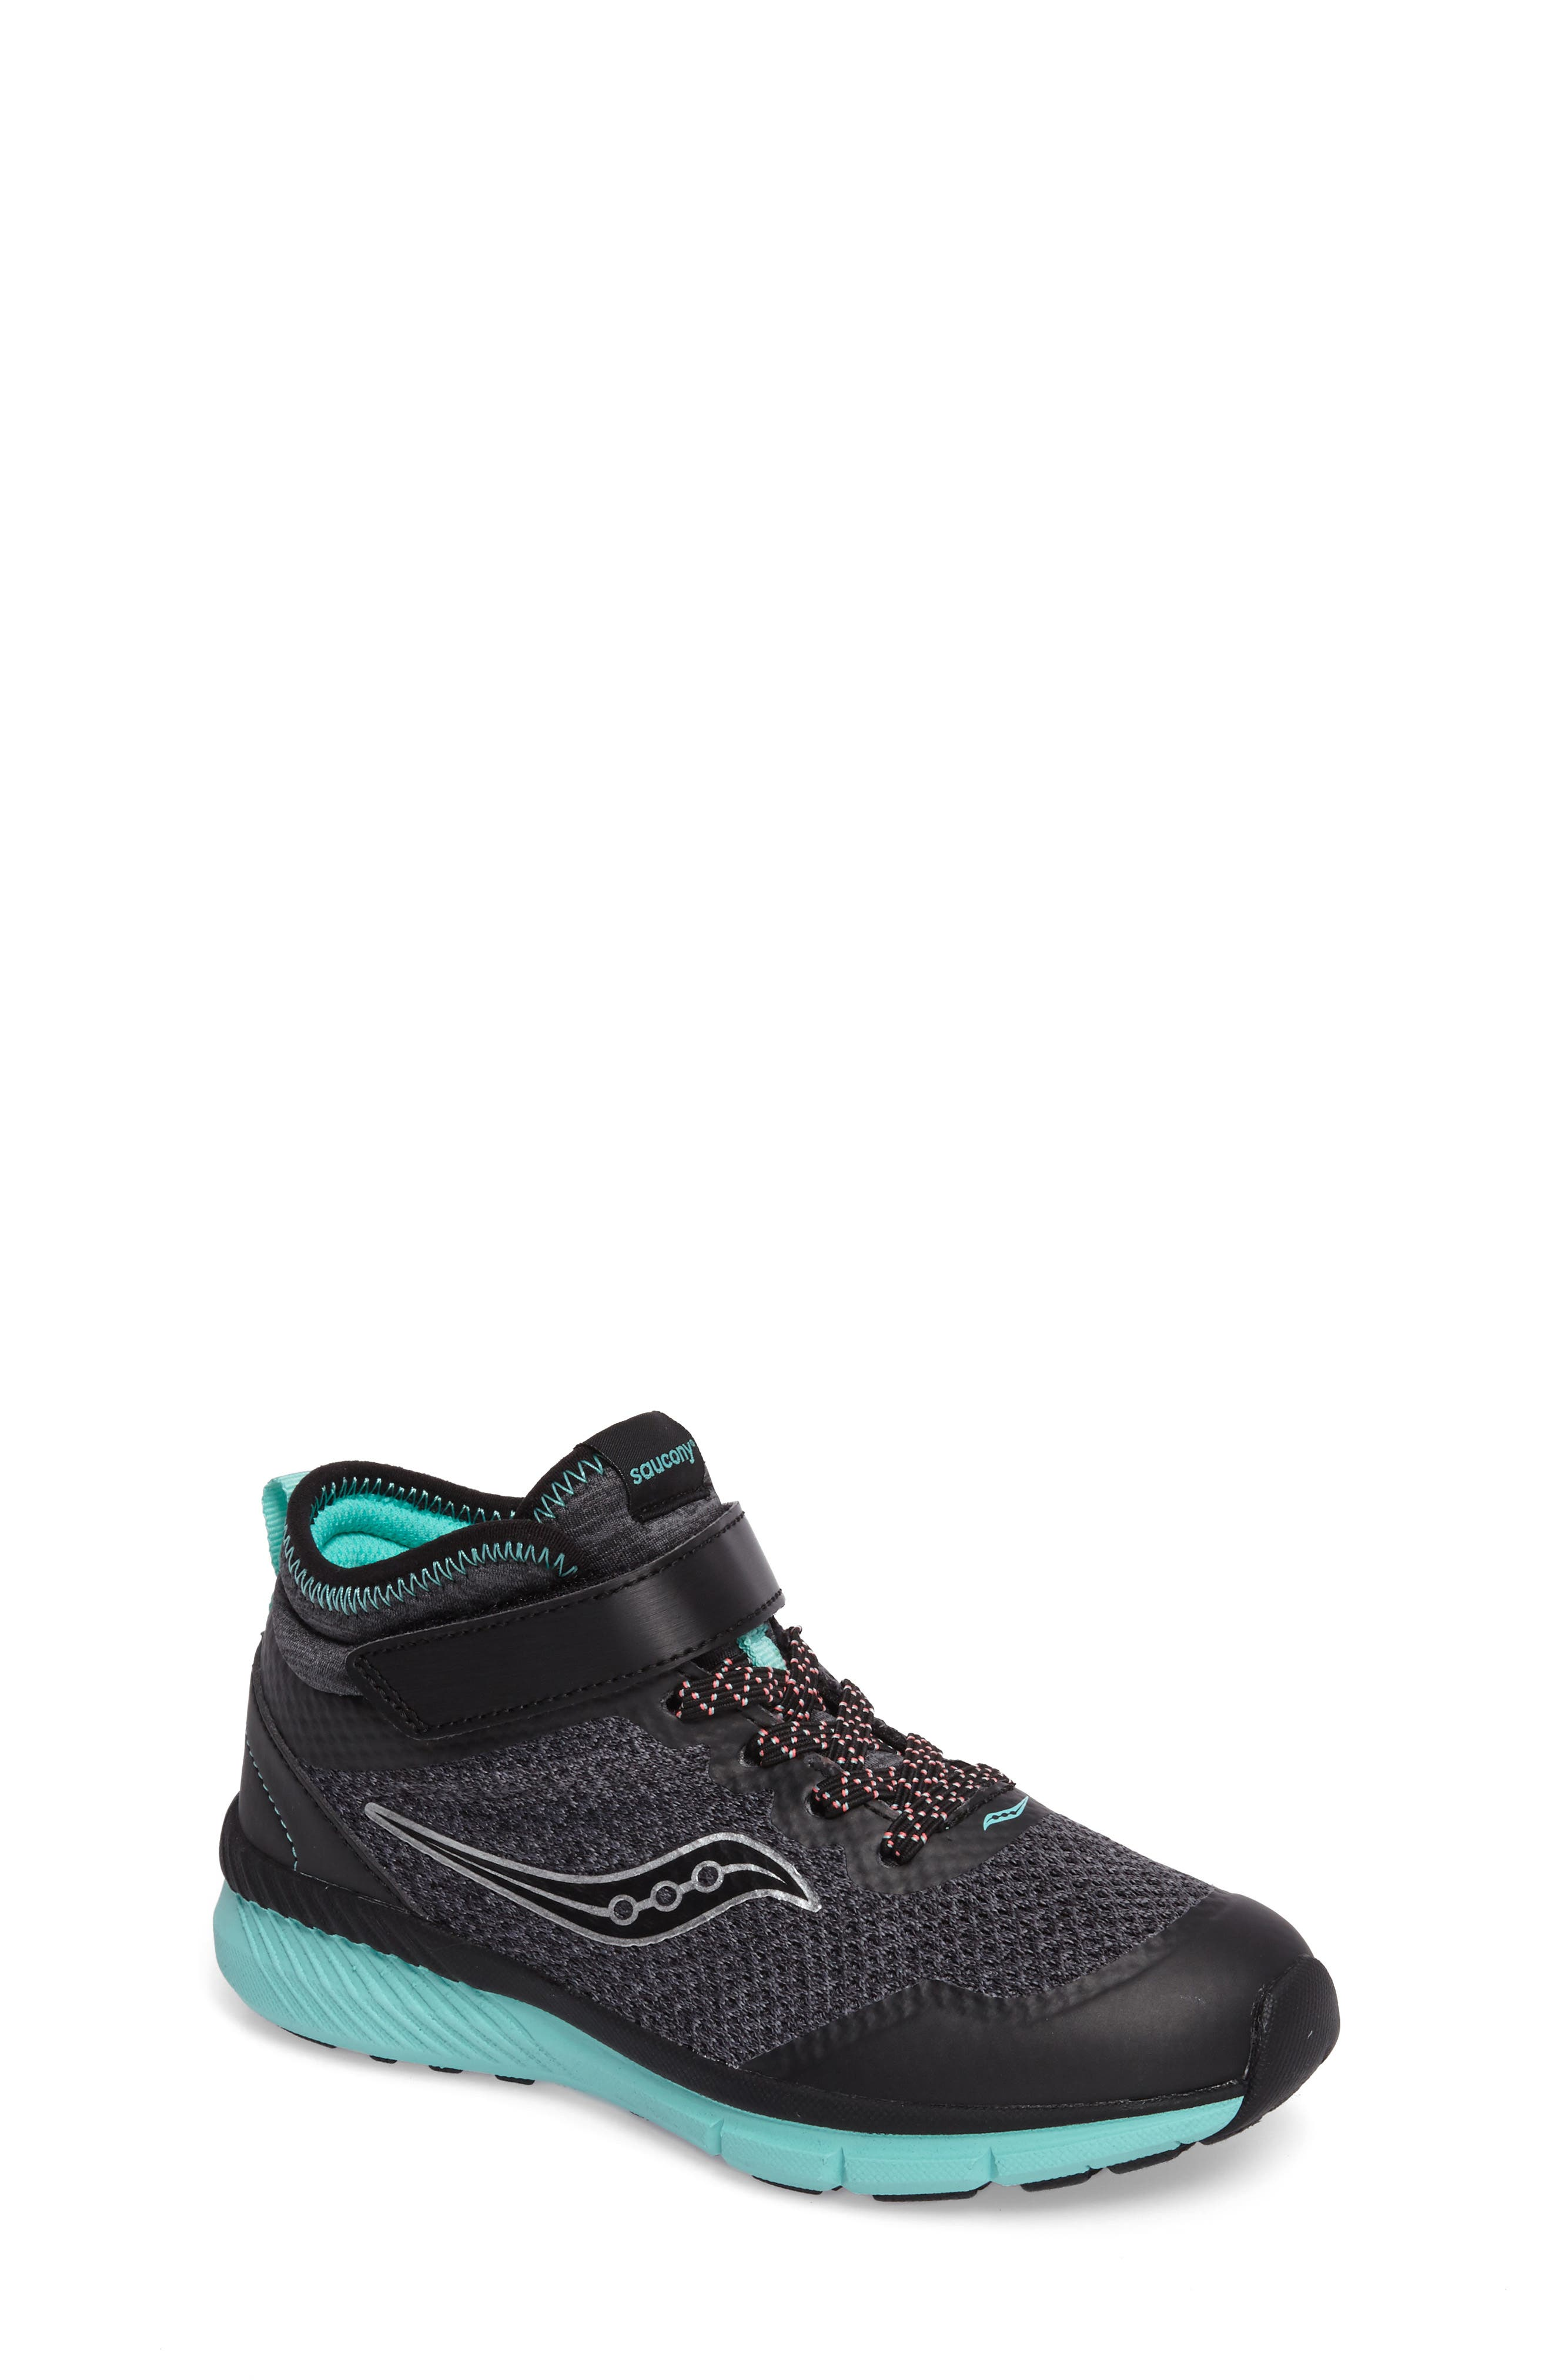 Ideal Sneaker,                             Main thumbnail 1, color,                             Black/ Turquoise